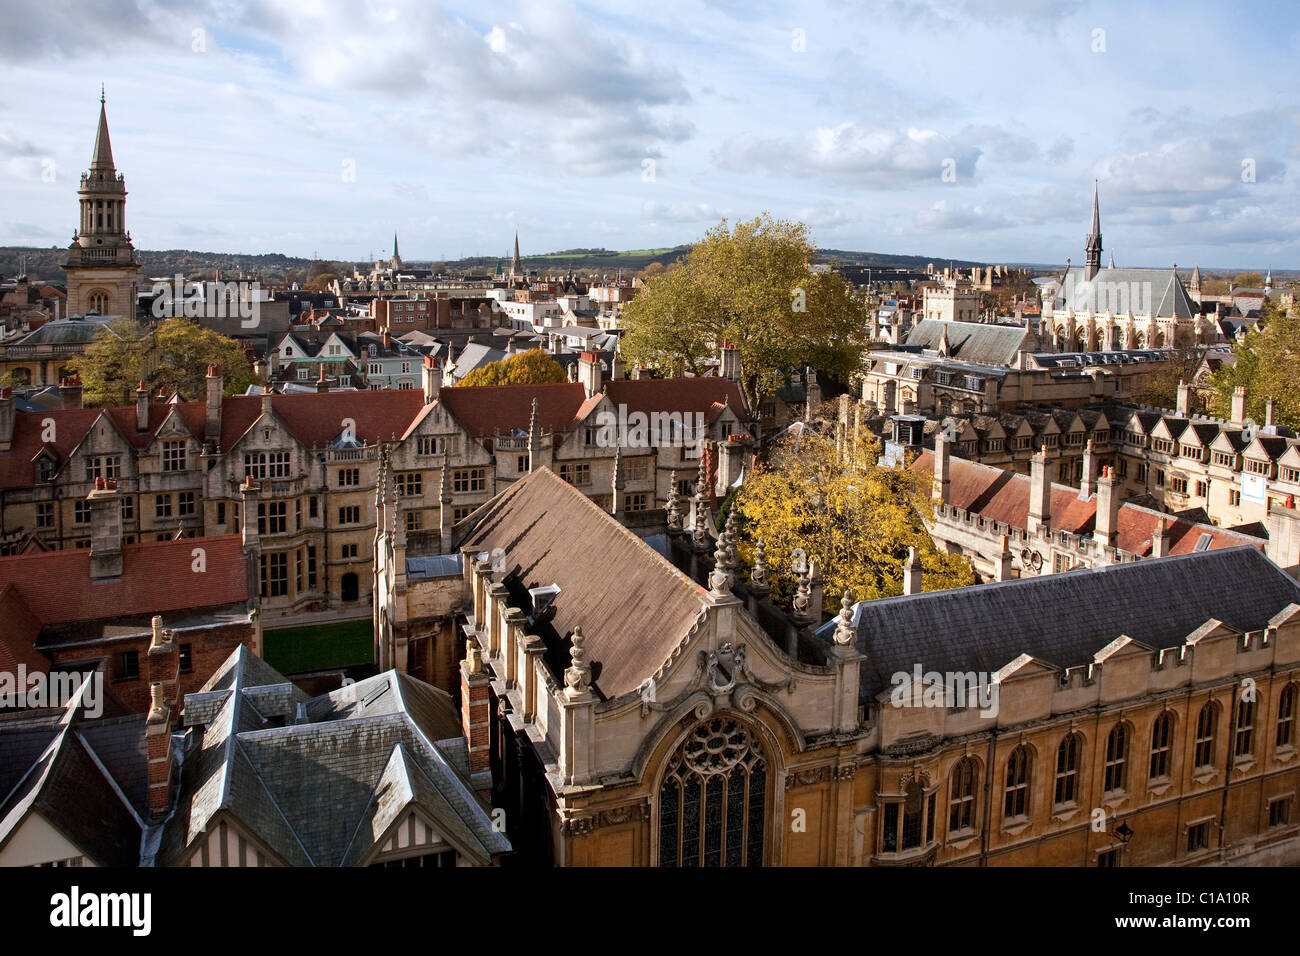 The Exeter and Brasenose College of the Oxford University, Oxfordshire, England, UK - Stock Image